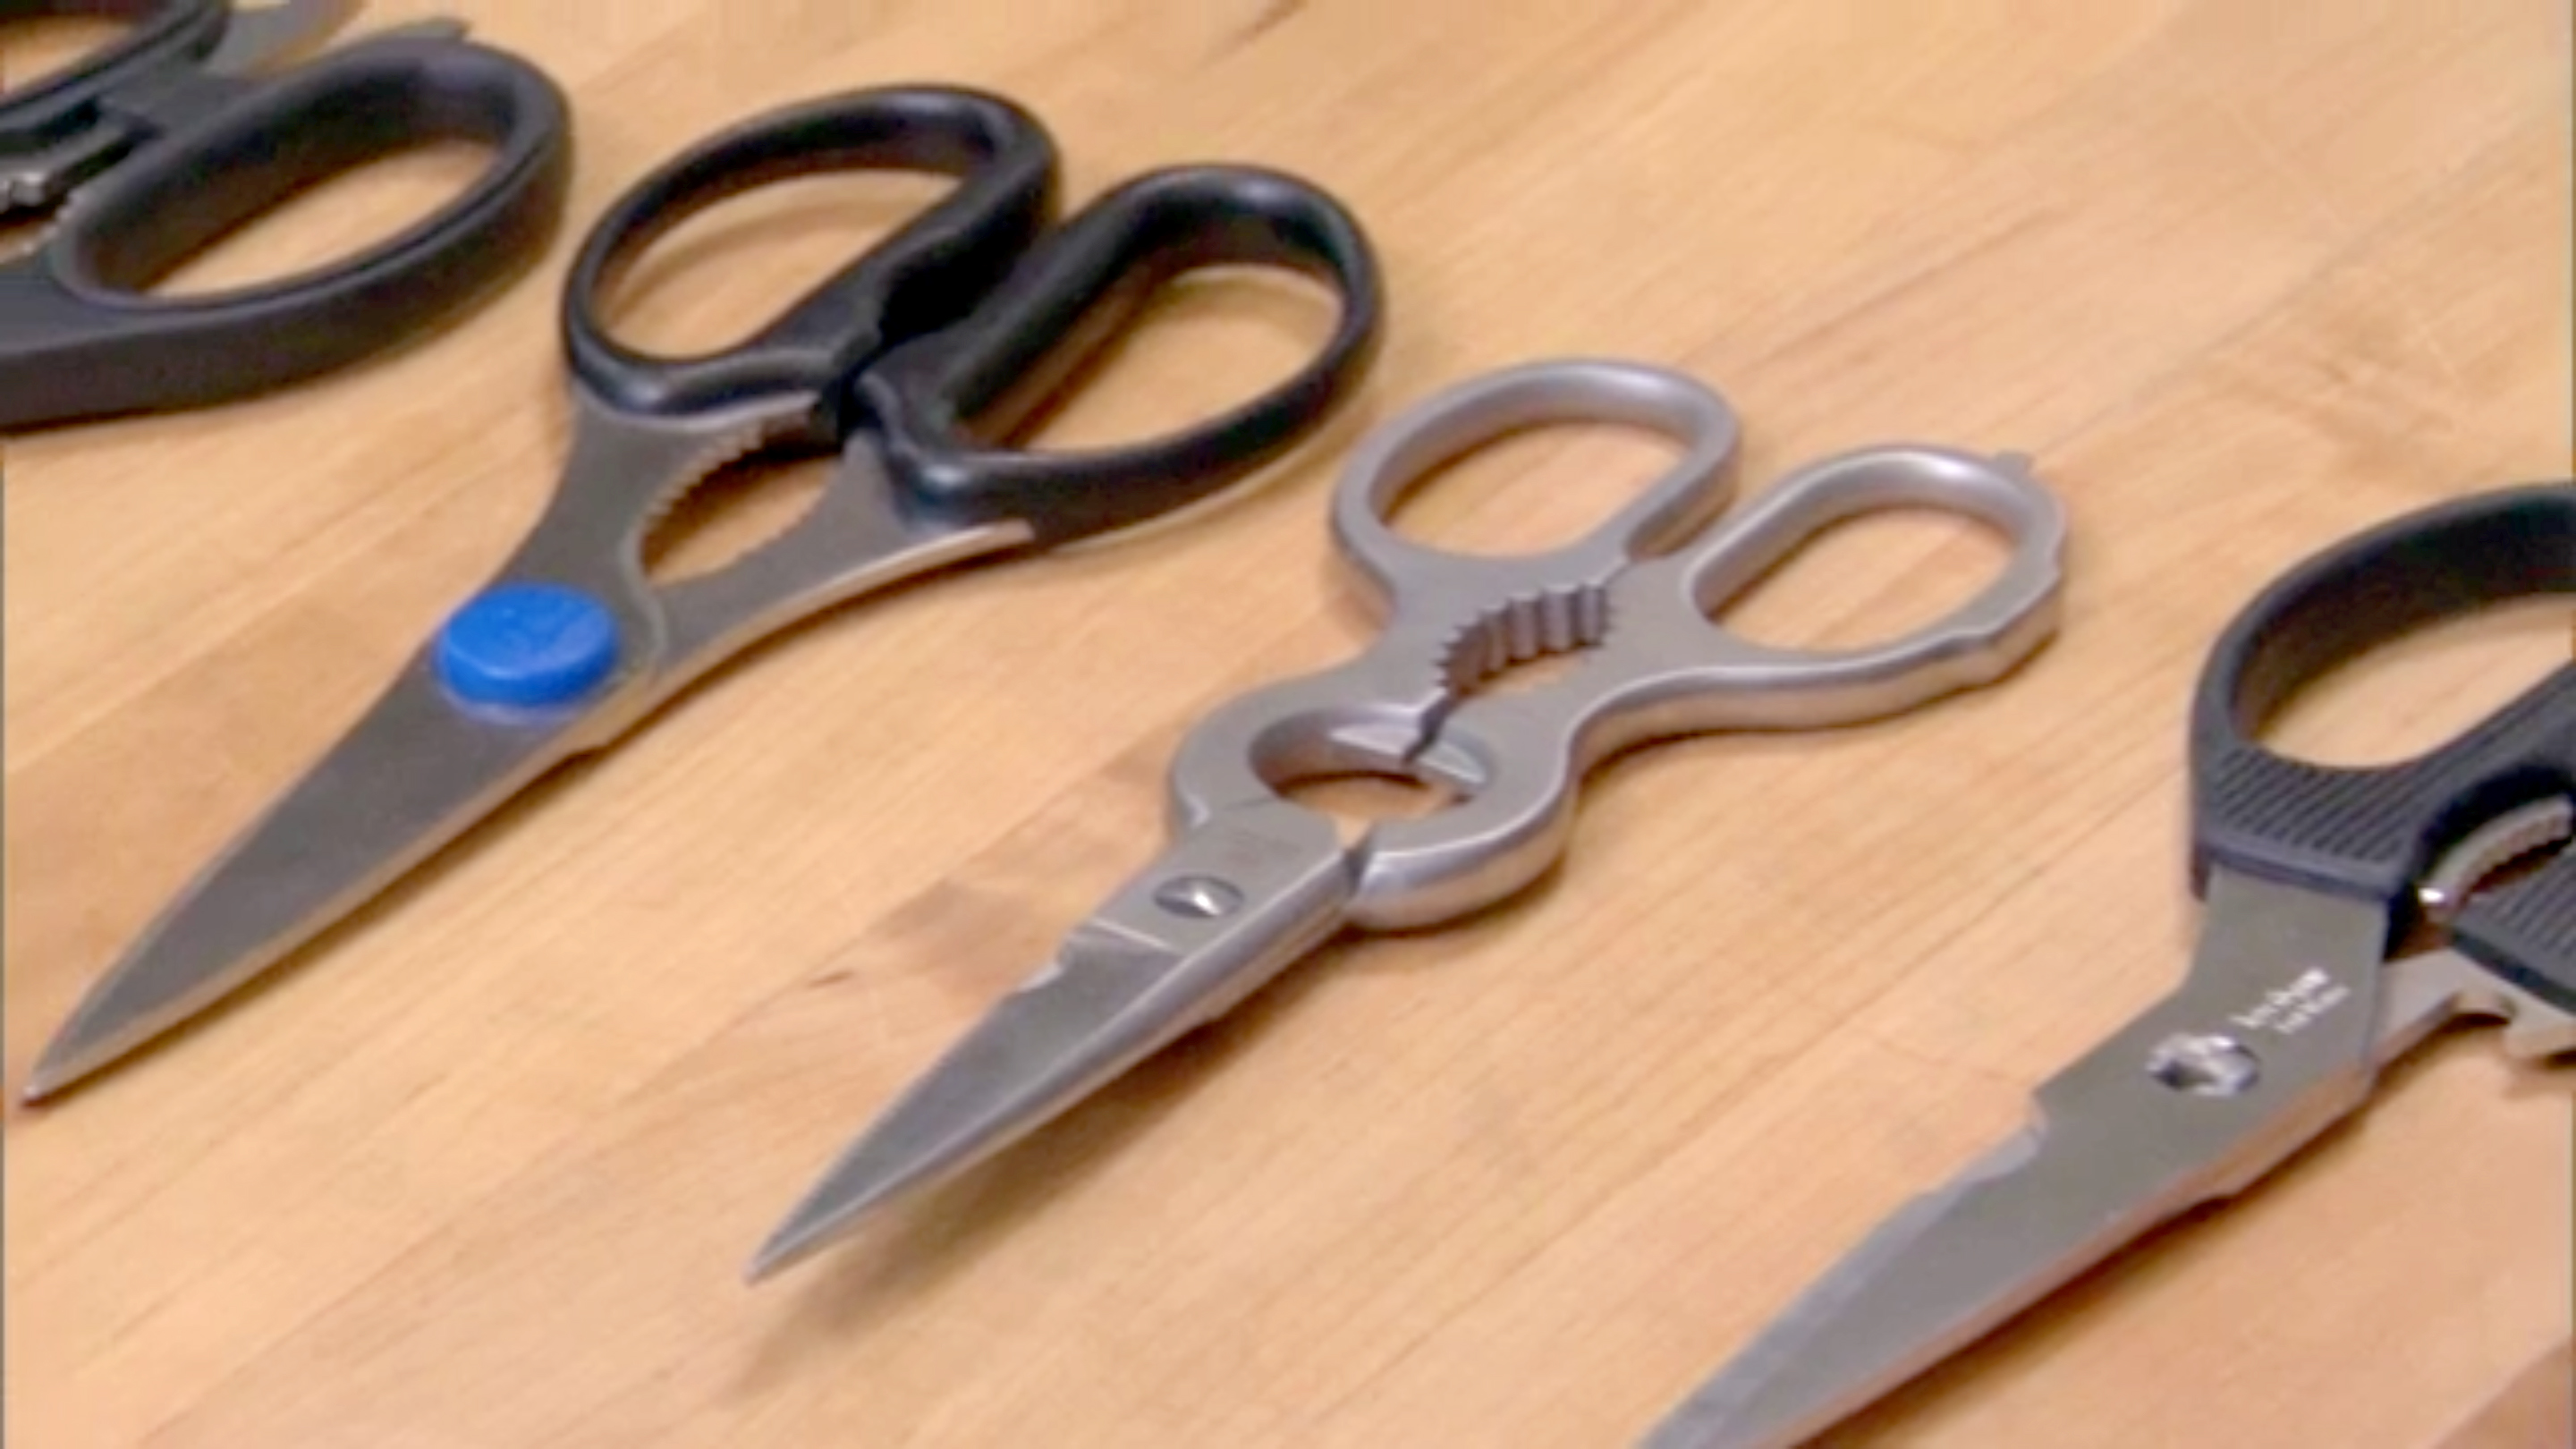 for scissors shears deals duty heavy homeequip kitchen